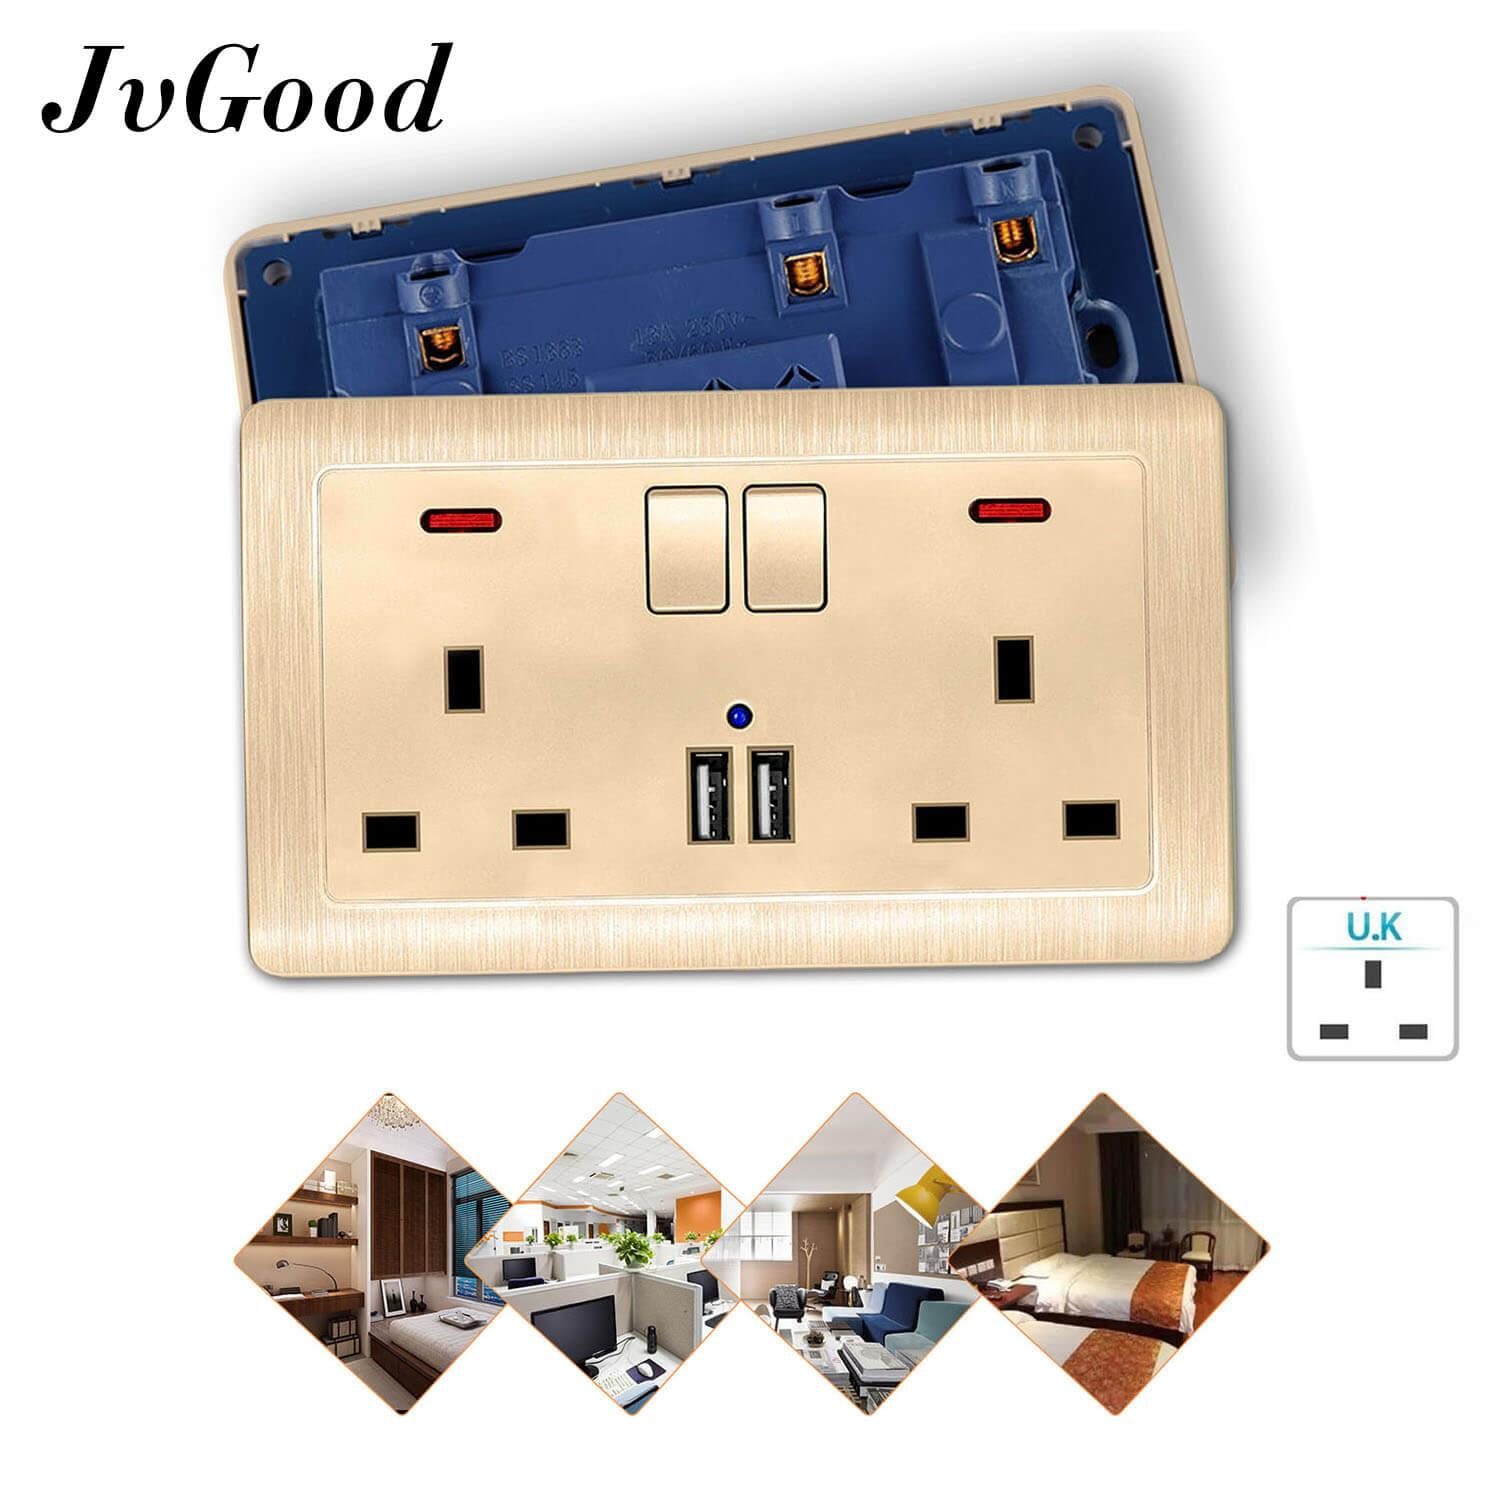 Jvgood Usb Wall Chargers Sockets Double Wall Switched Sockets Panel Wall Plugs Usb Outlets Power Chargers Sockets With 2 Usb Charger Ports By Jvgood.